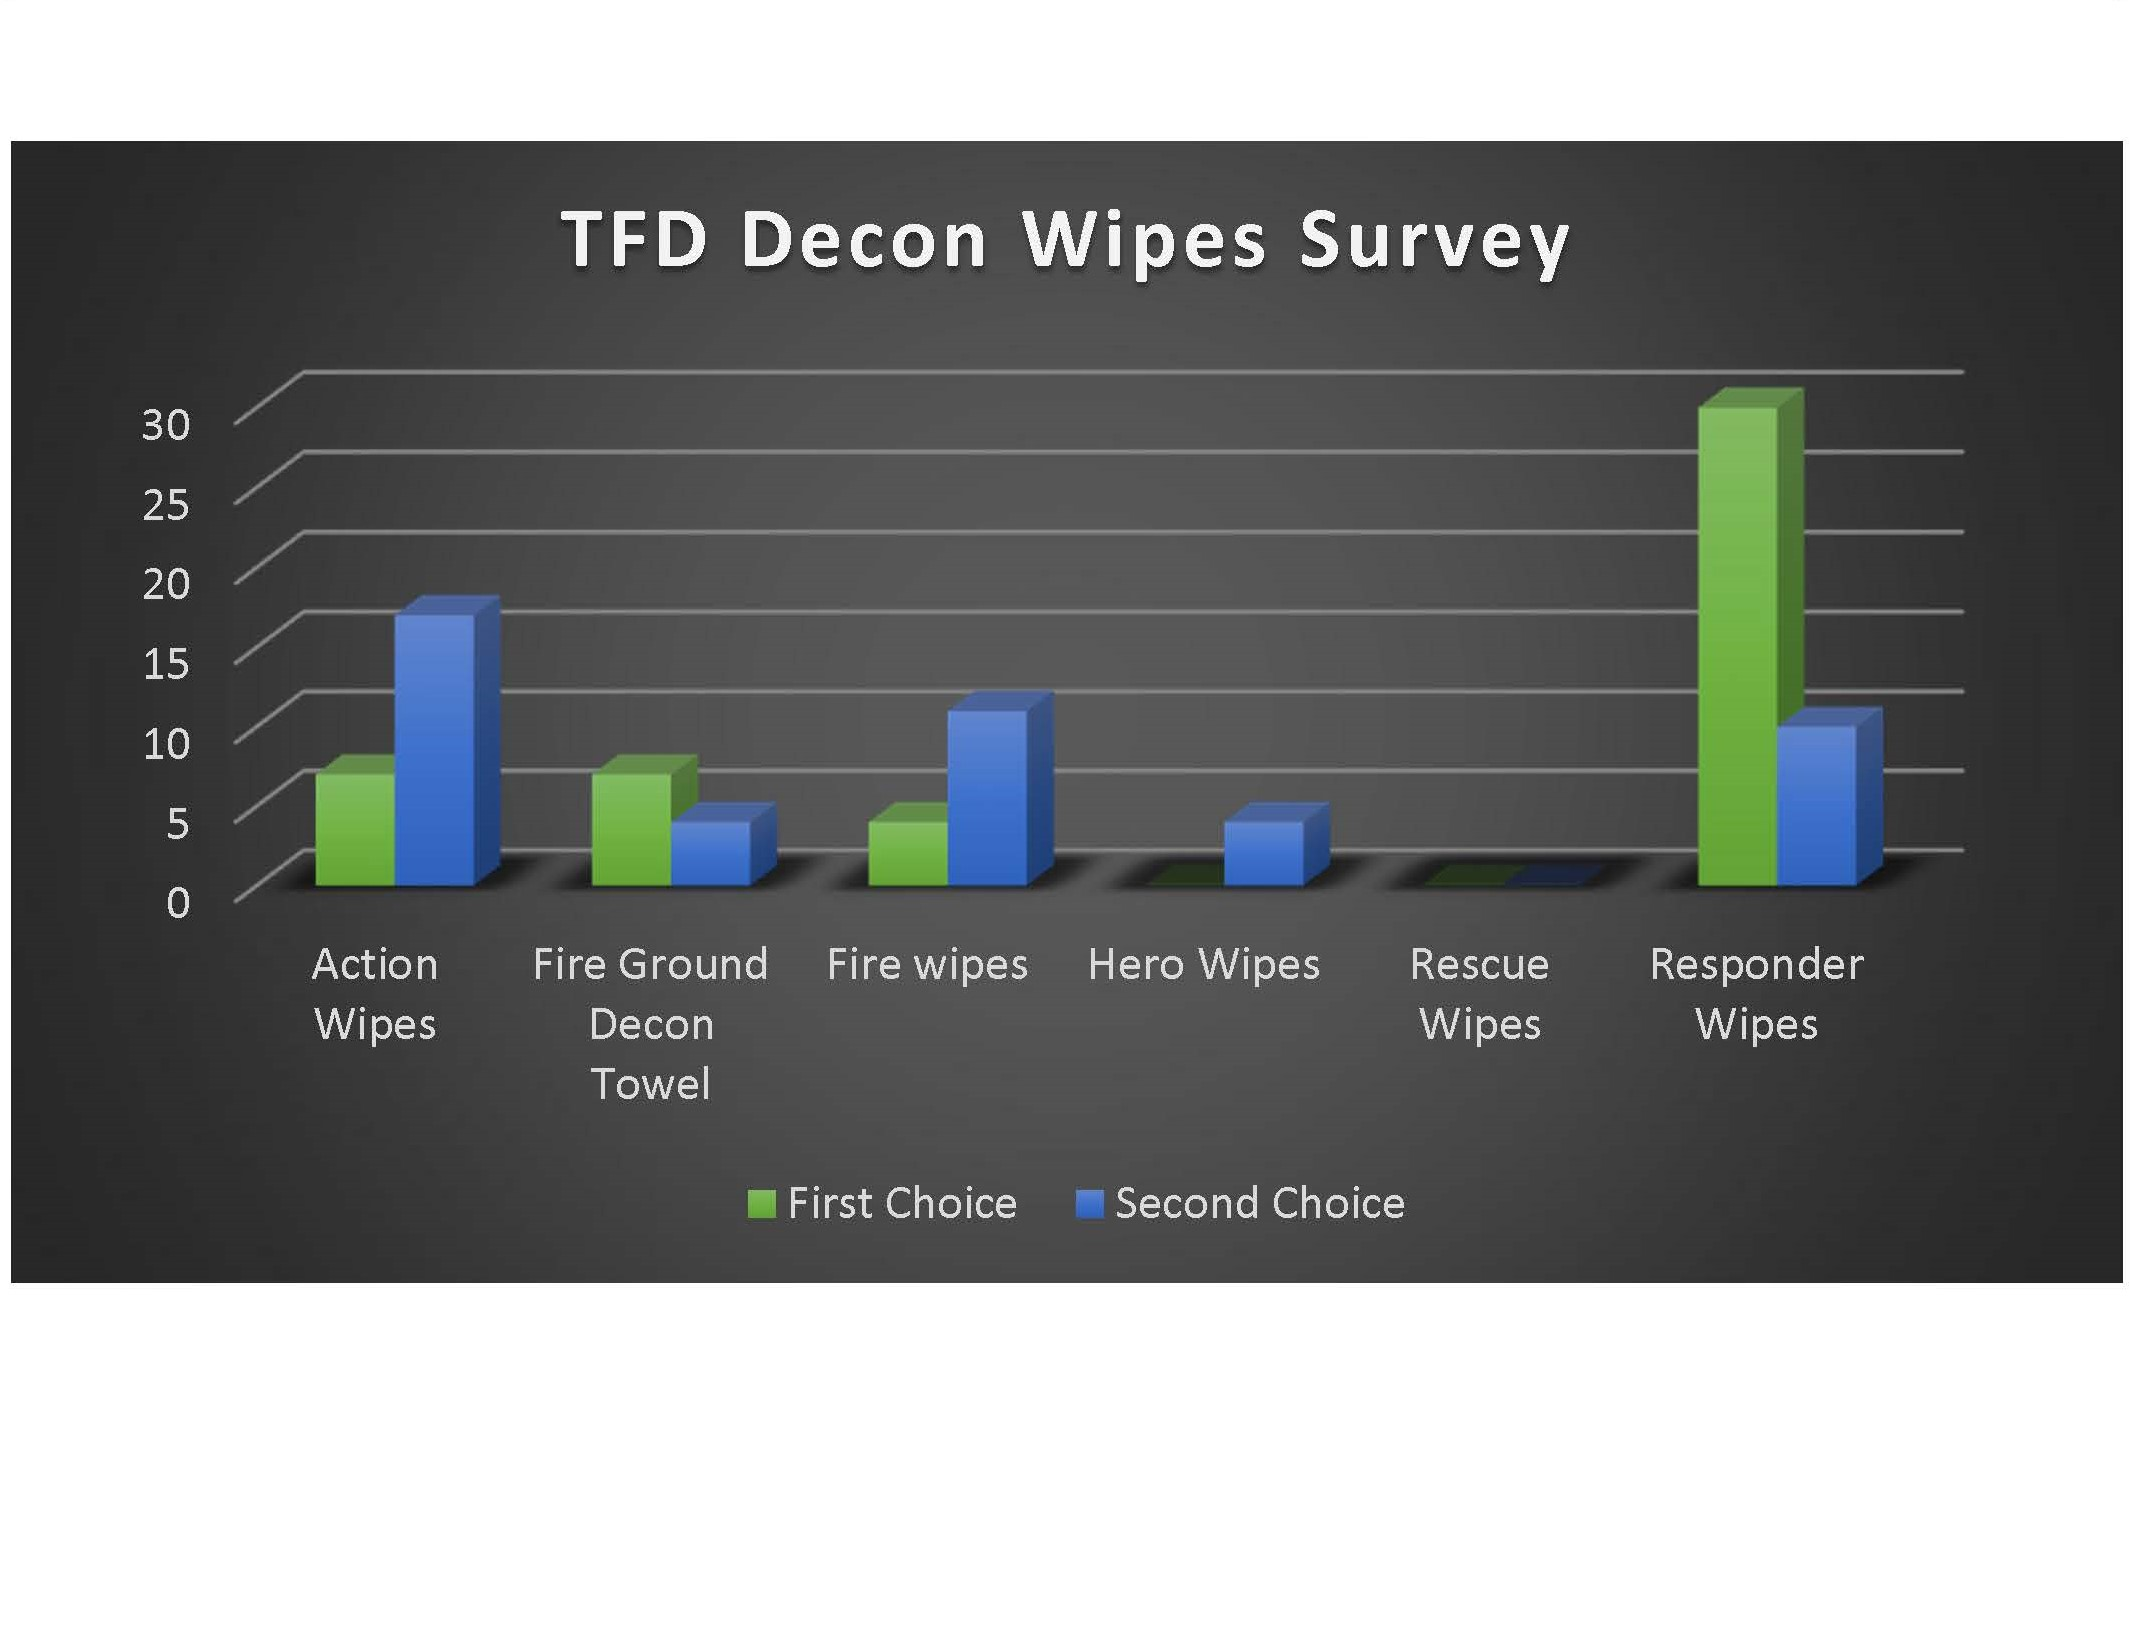 Comparison of Competing Wipes